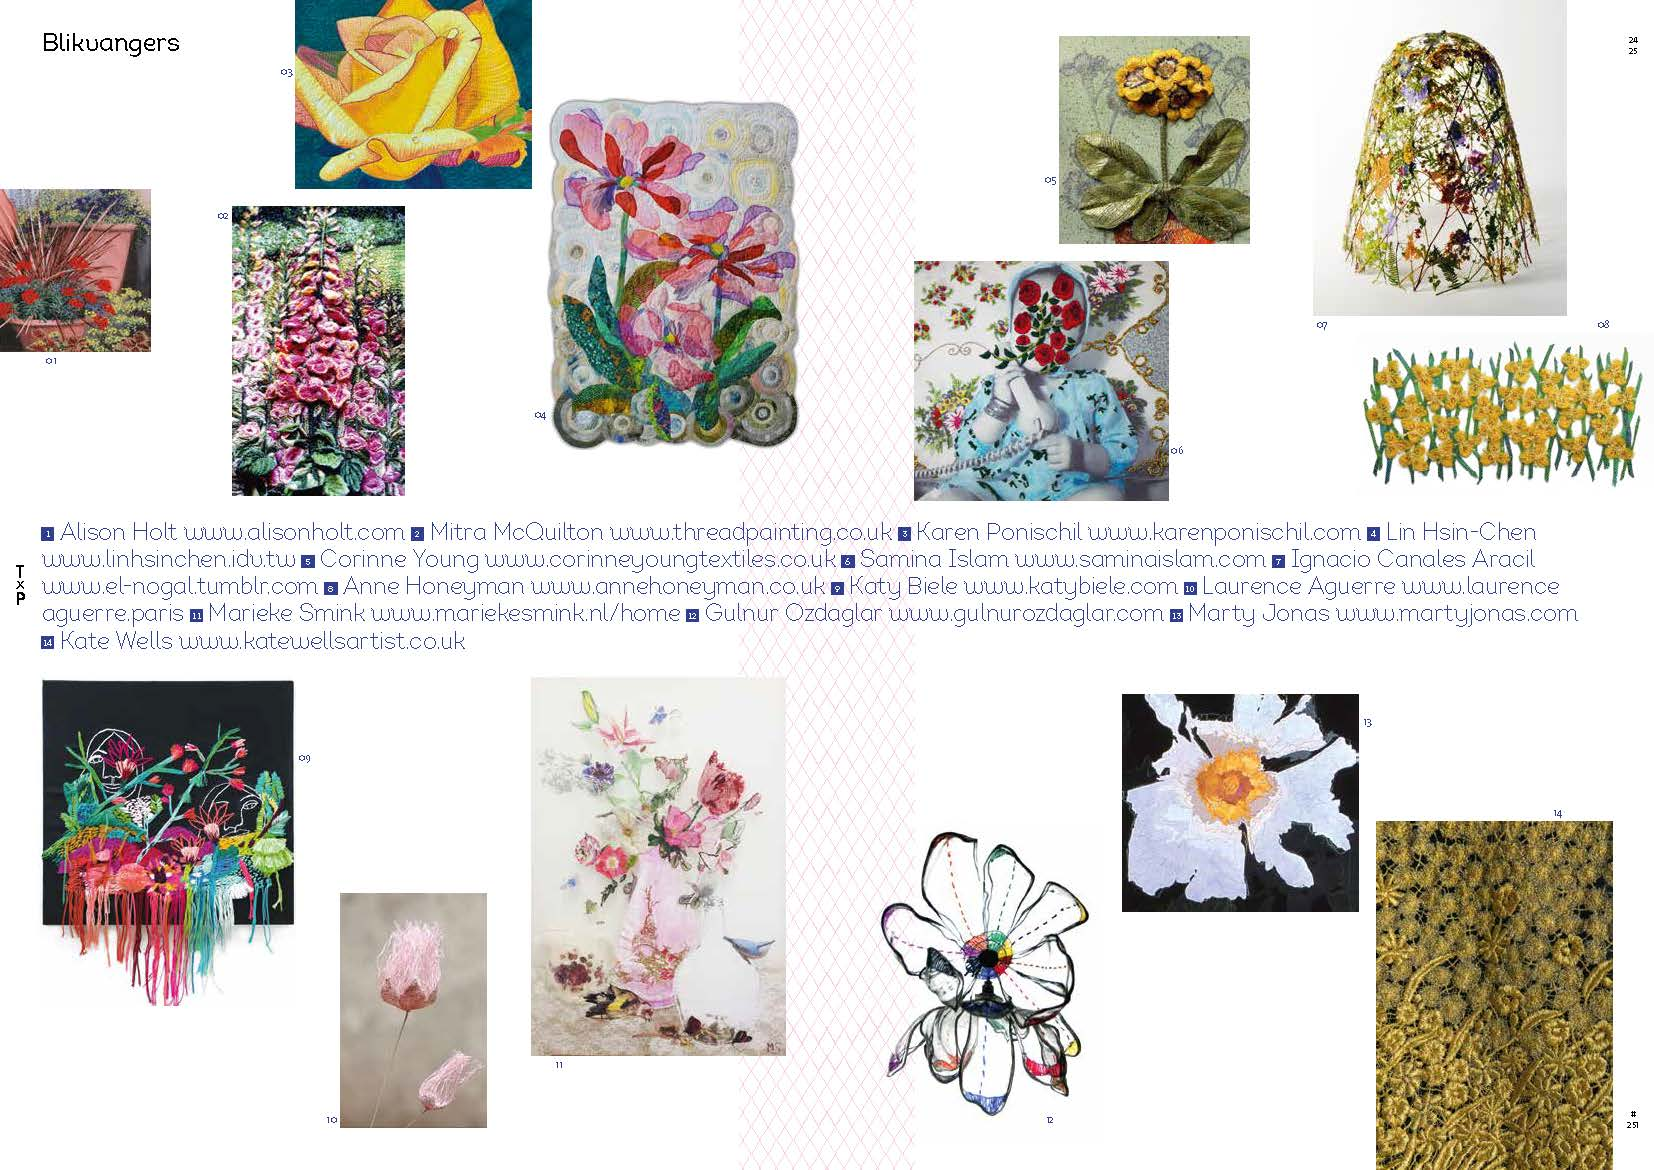 Feature in issue 251 ('Flowers') of Netherlands magazine Textiel Plus